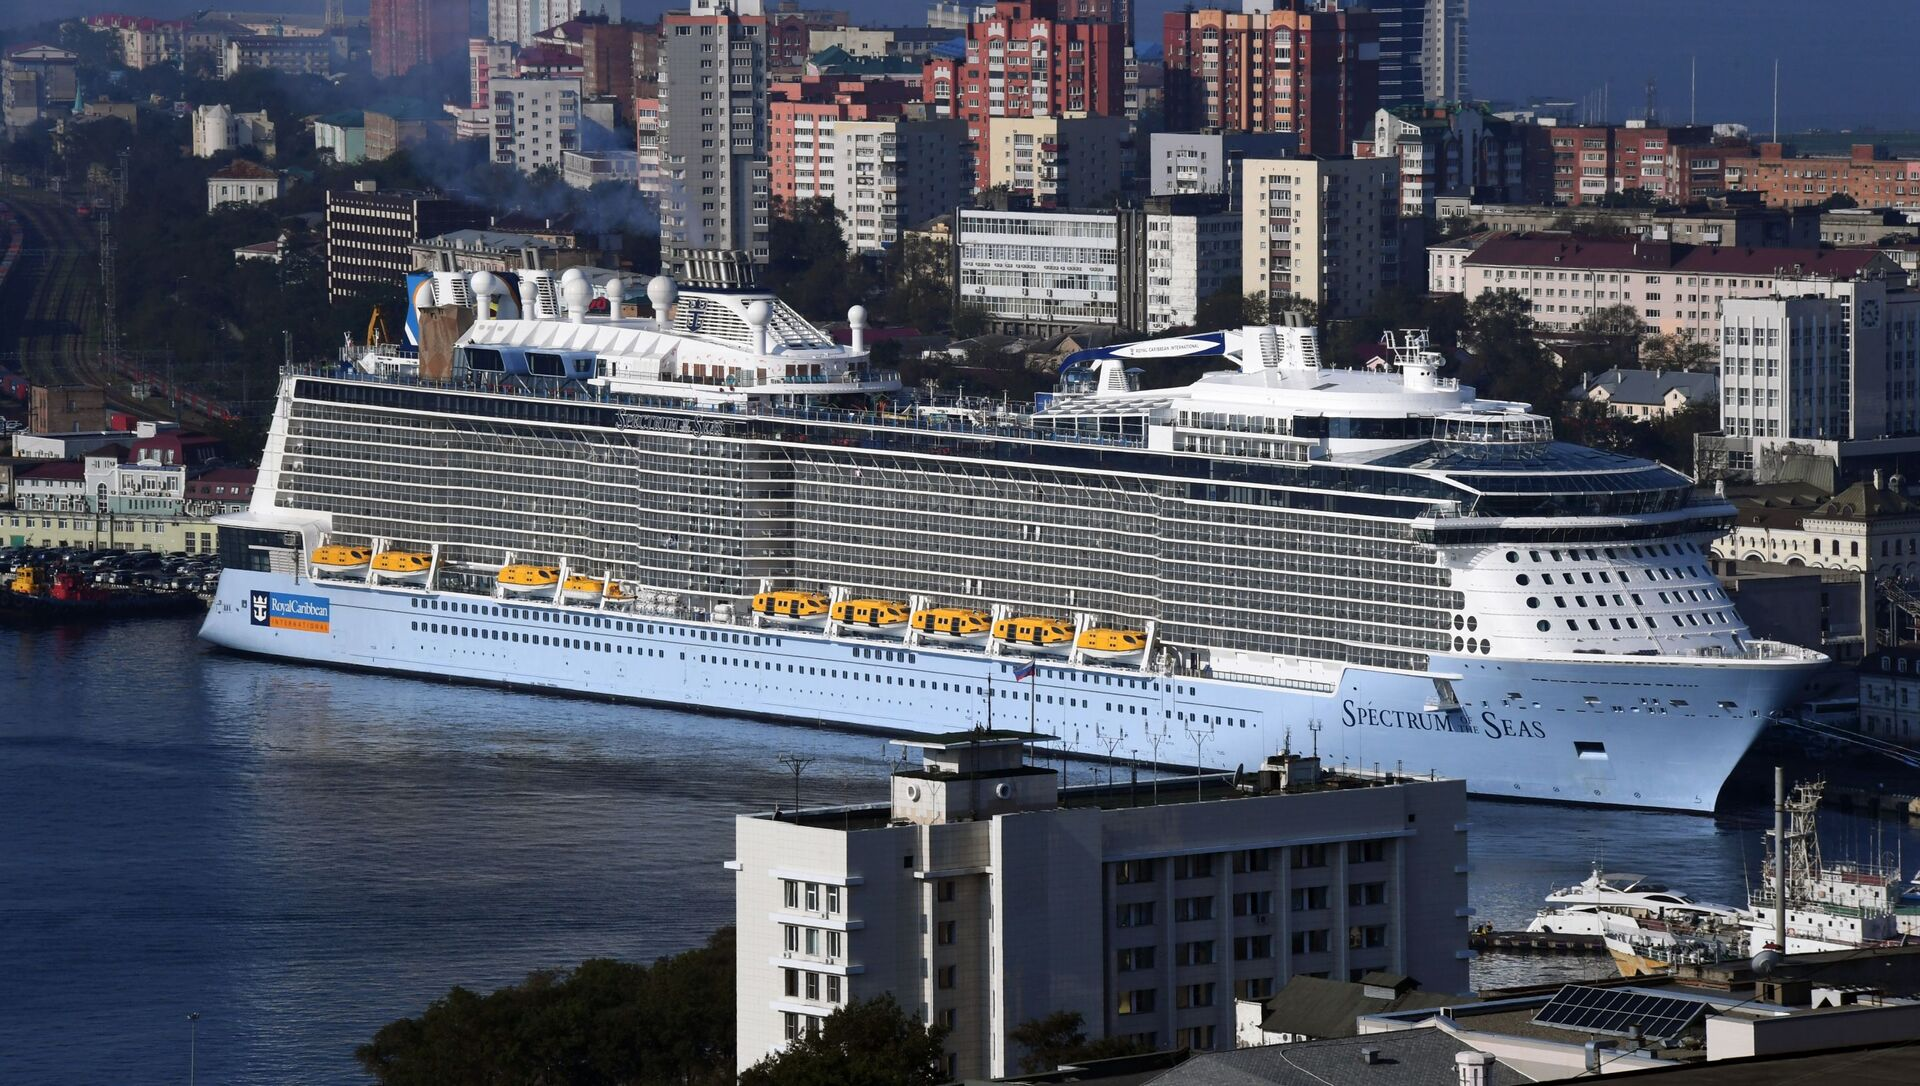 The Spectrum of the Seas cruise ship arrives in the port of Vladivostok. The vessel is based in Shanghai and carries passengers to Japan.   - Sputnik International, 1920, 27.08.2021